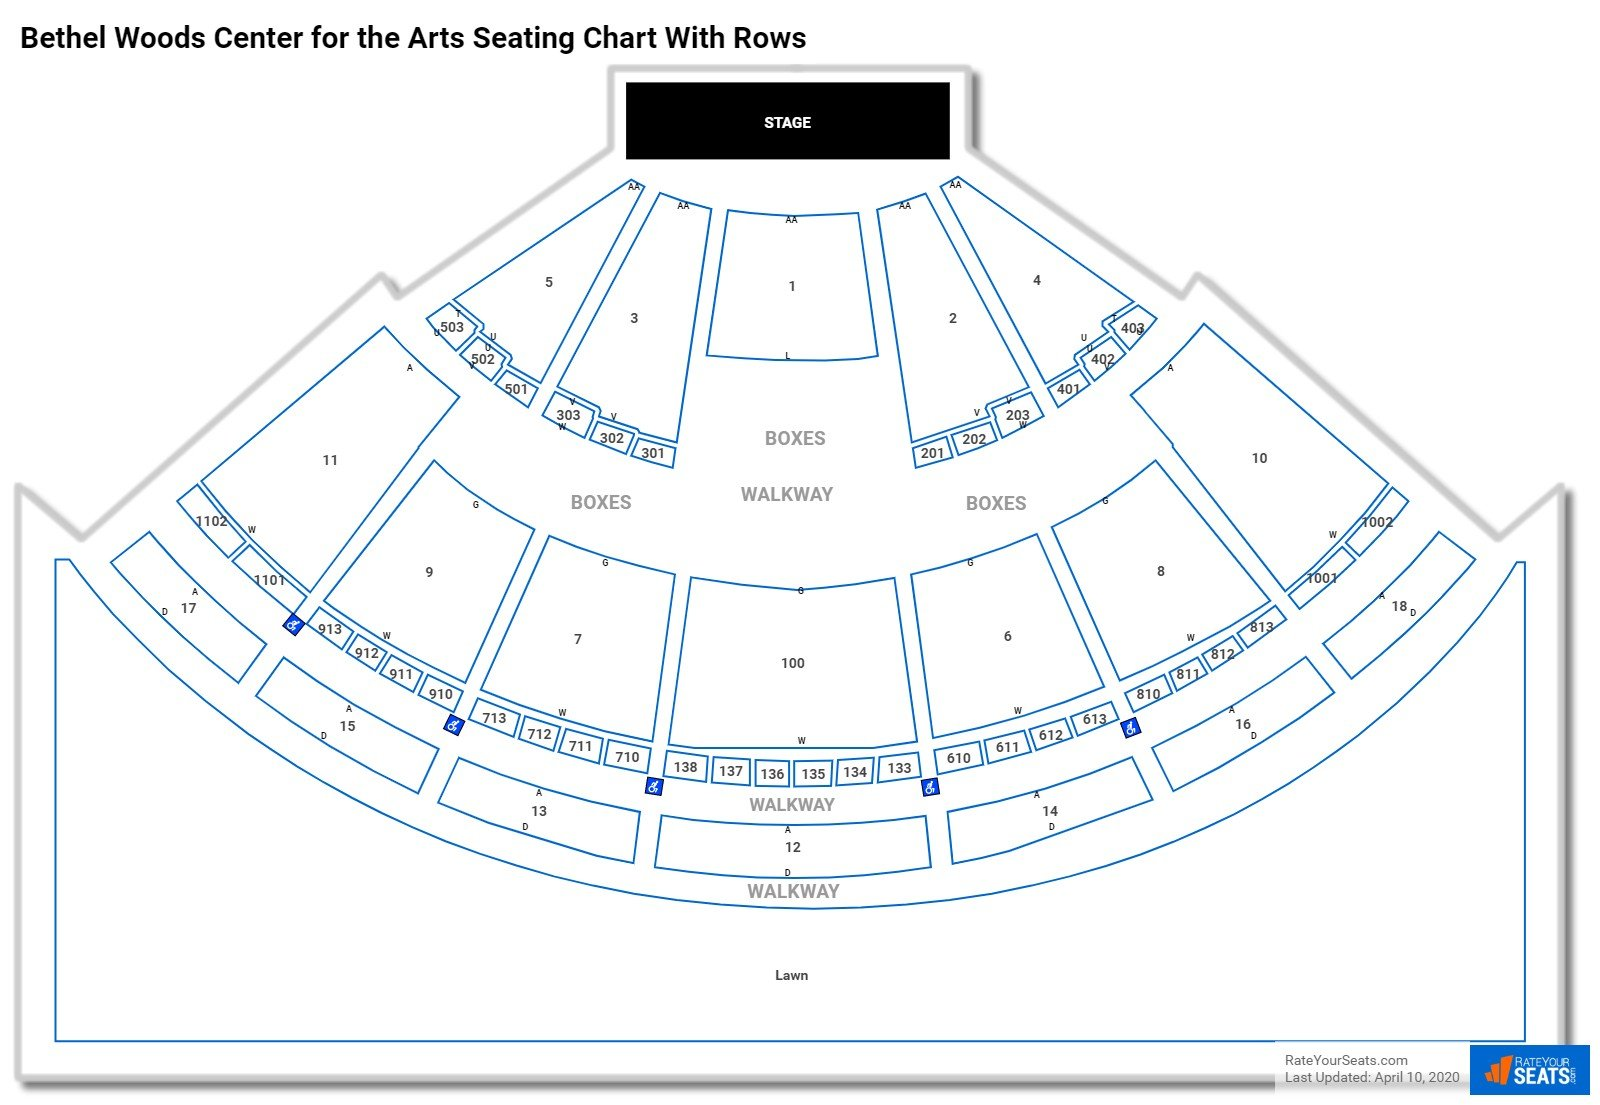 Bethel Woods Center for the Arts seating chart with rows